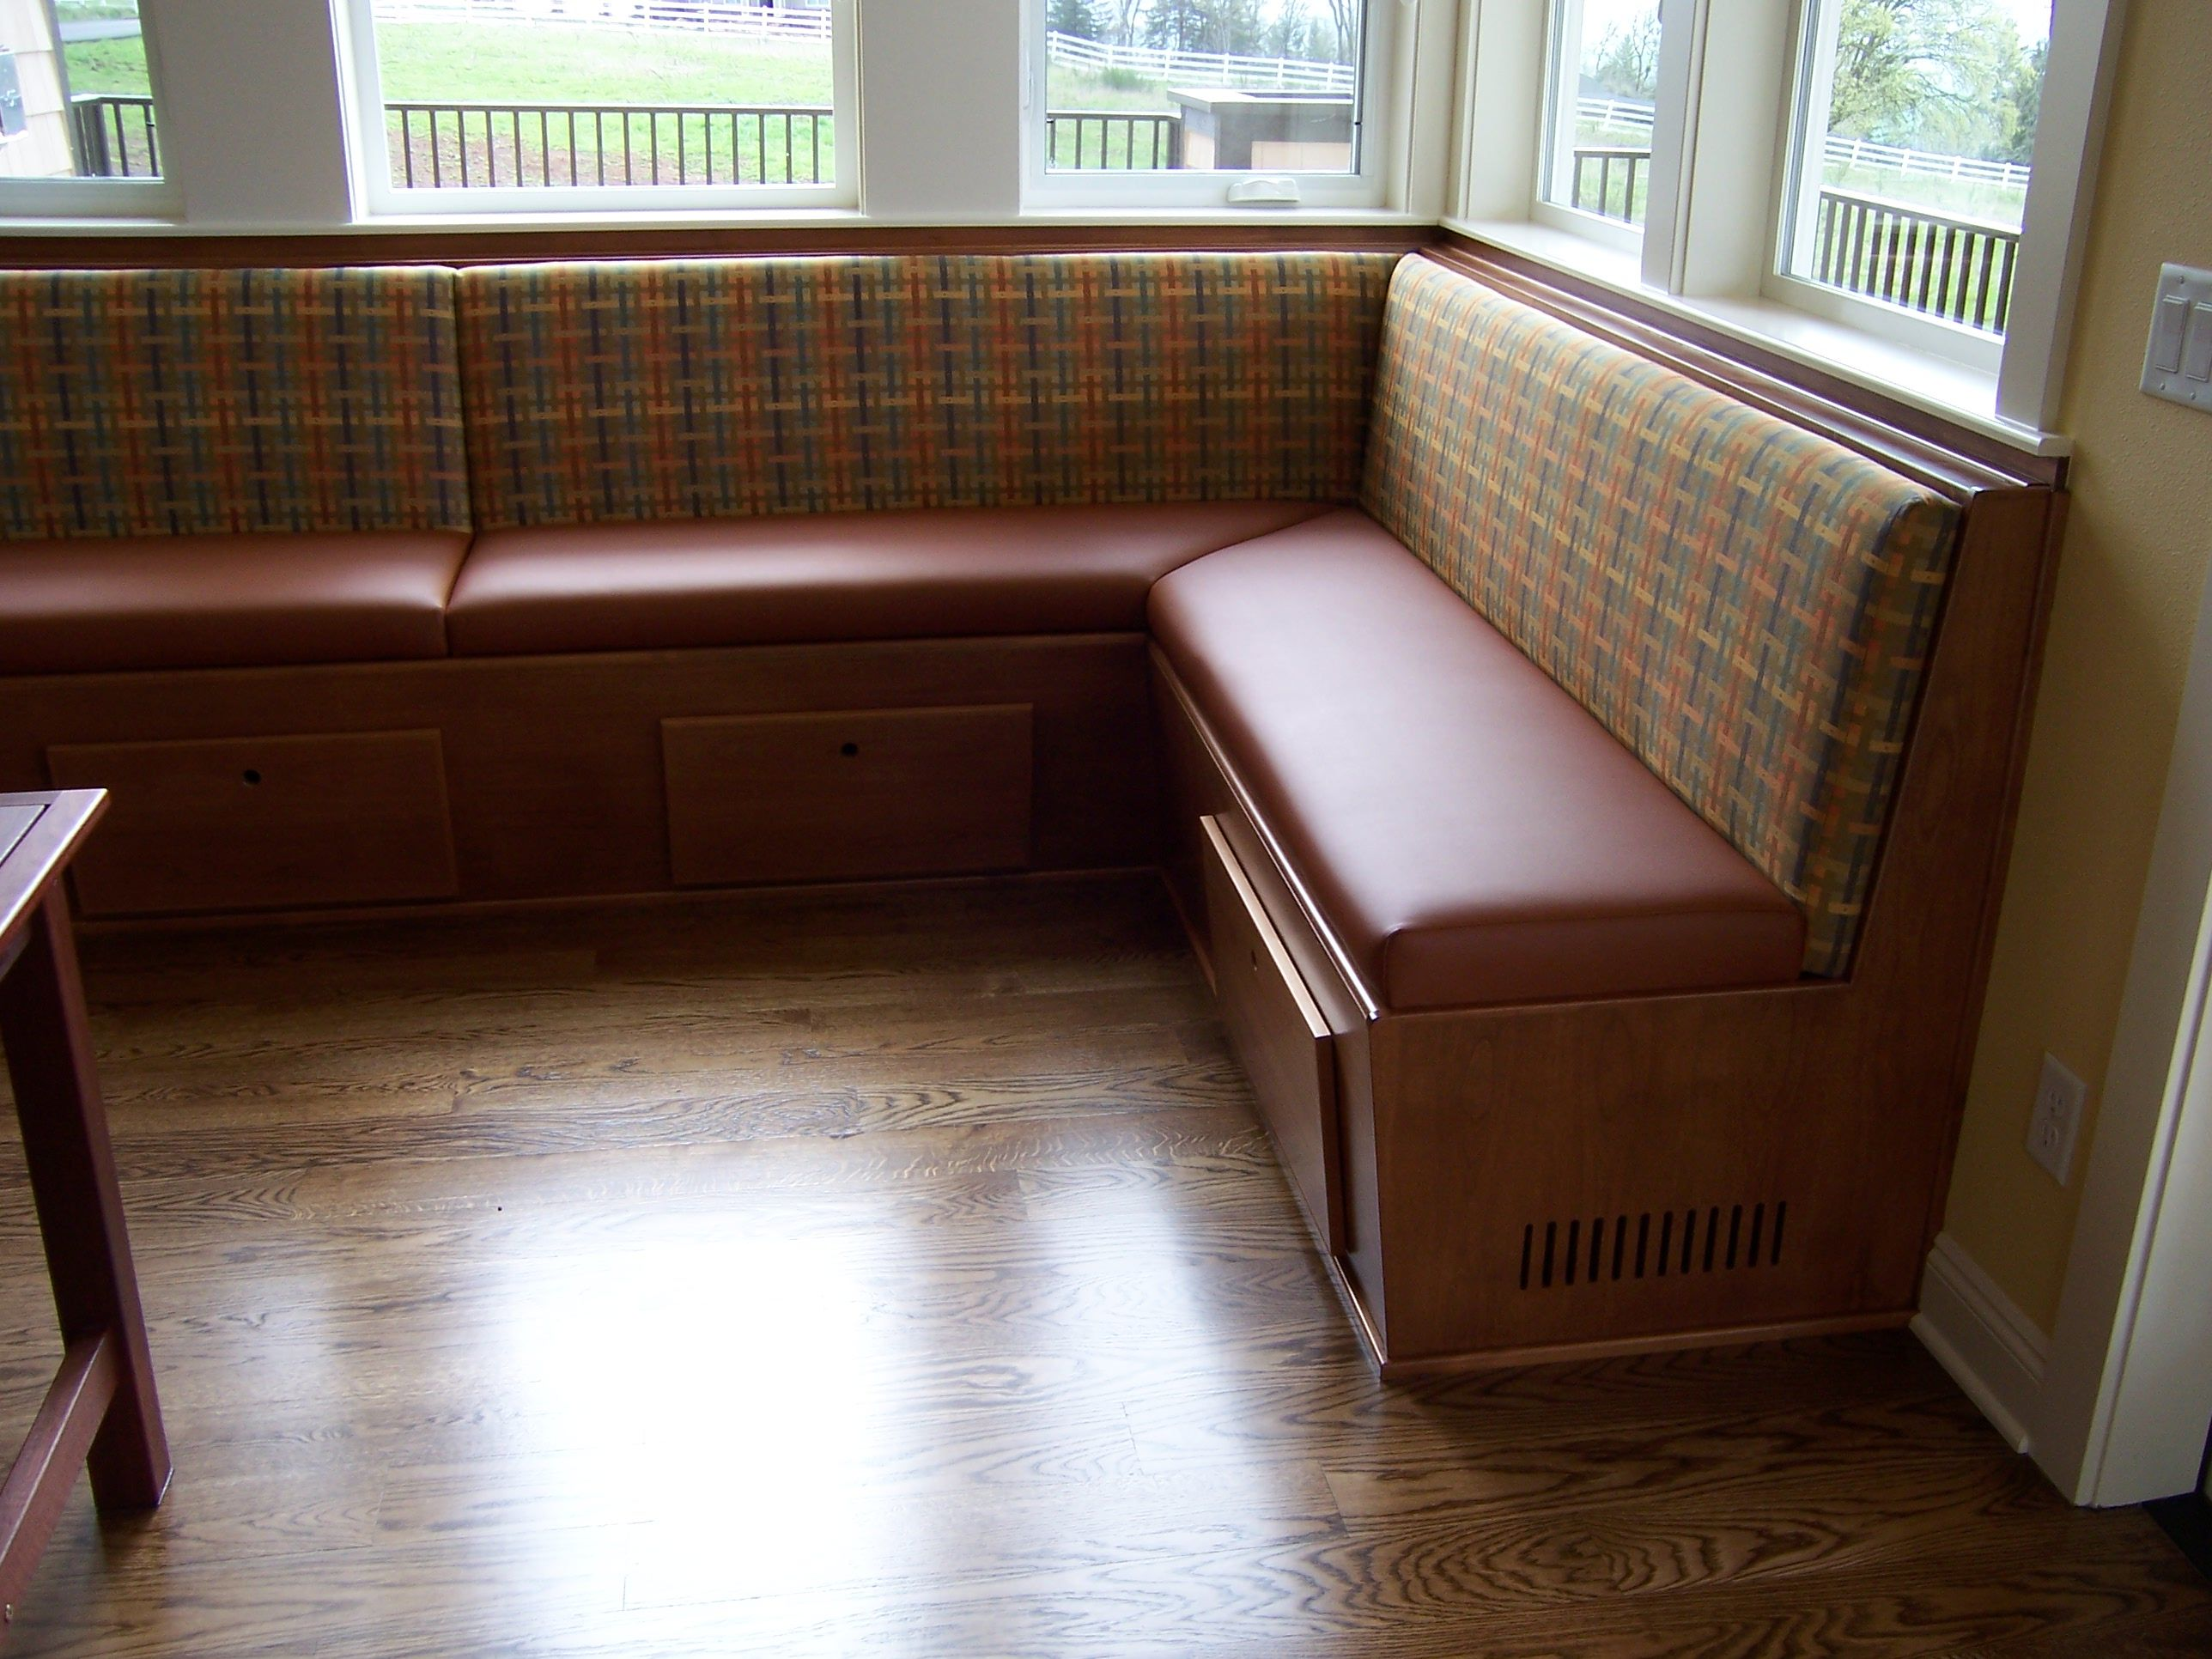 Banquette bench adding coziness and warmth to your Banquette bench